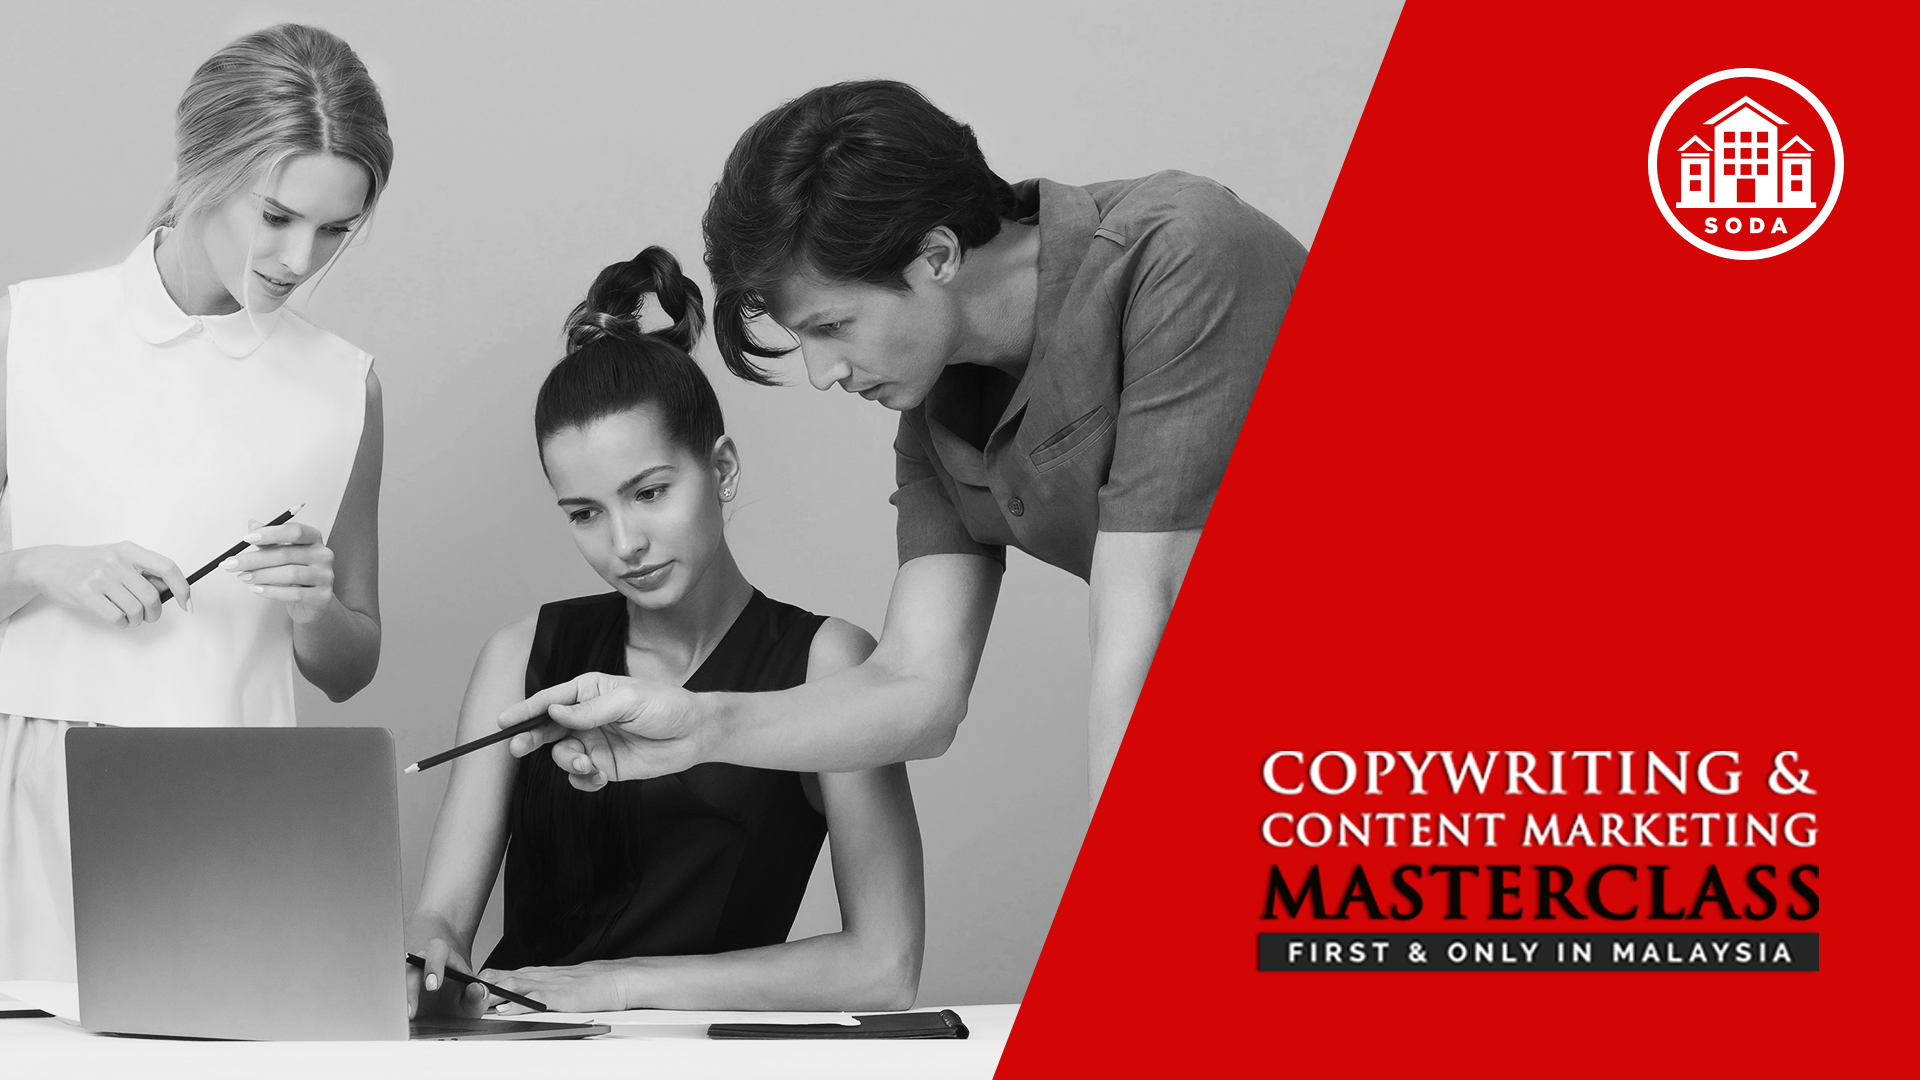 https://www.schoolofdigitaladvertising.com/courses/copywriting-content-marketing-masterclass-training/